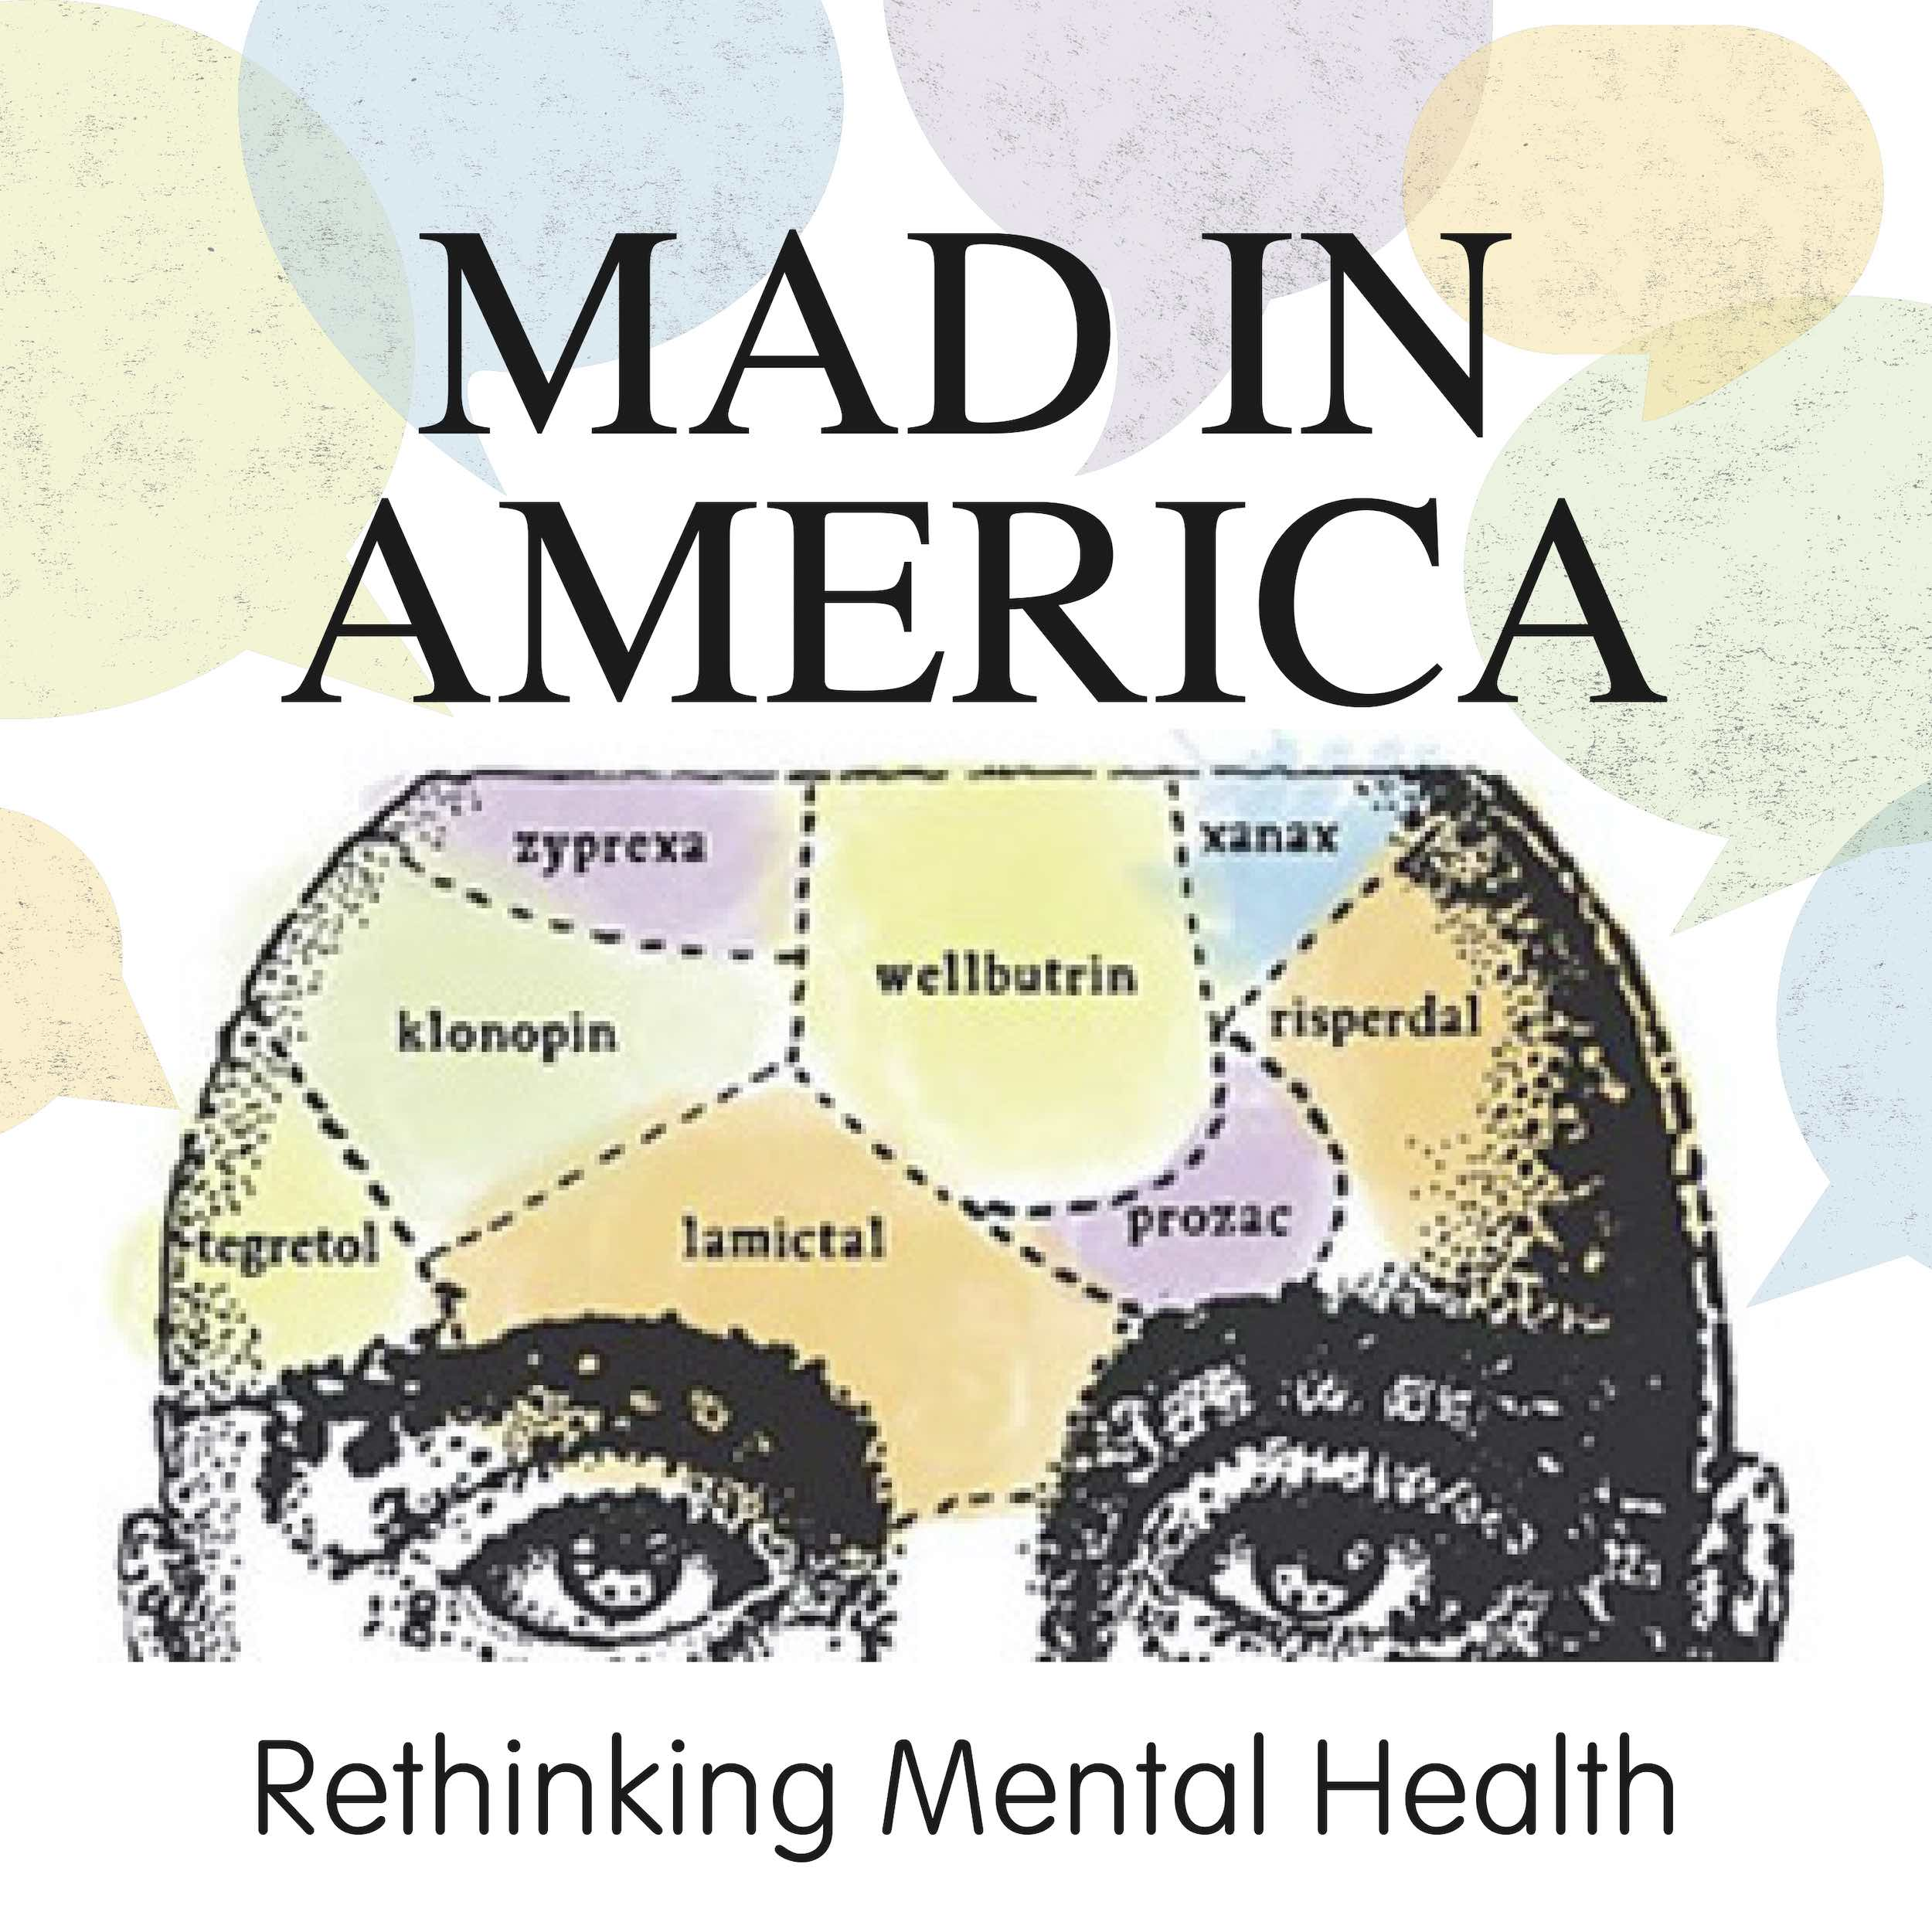 Mad in America: Rethinking Mental Health - Ian Tucker - Mental Health and Emotion in the Digital Age